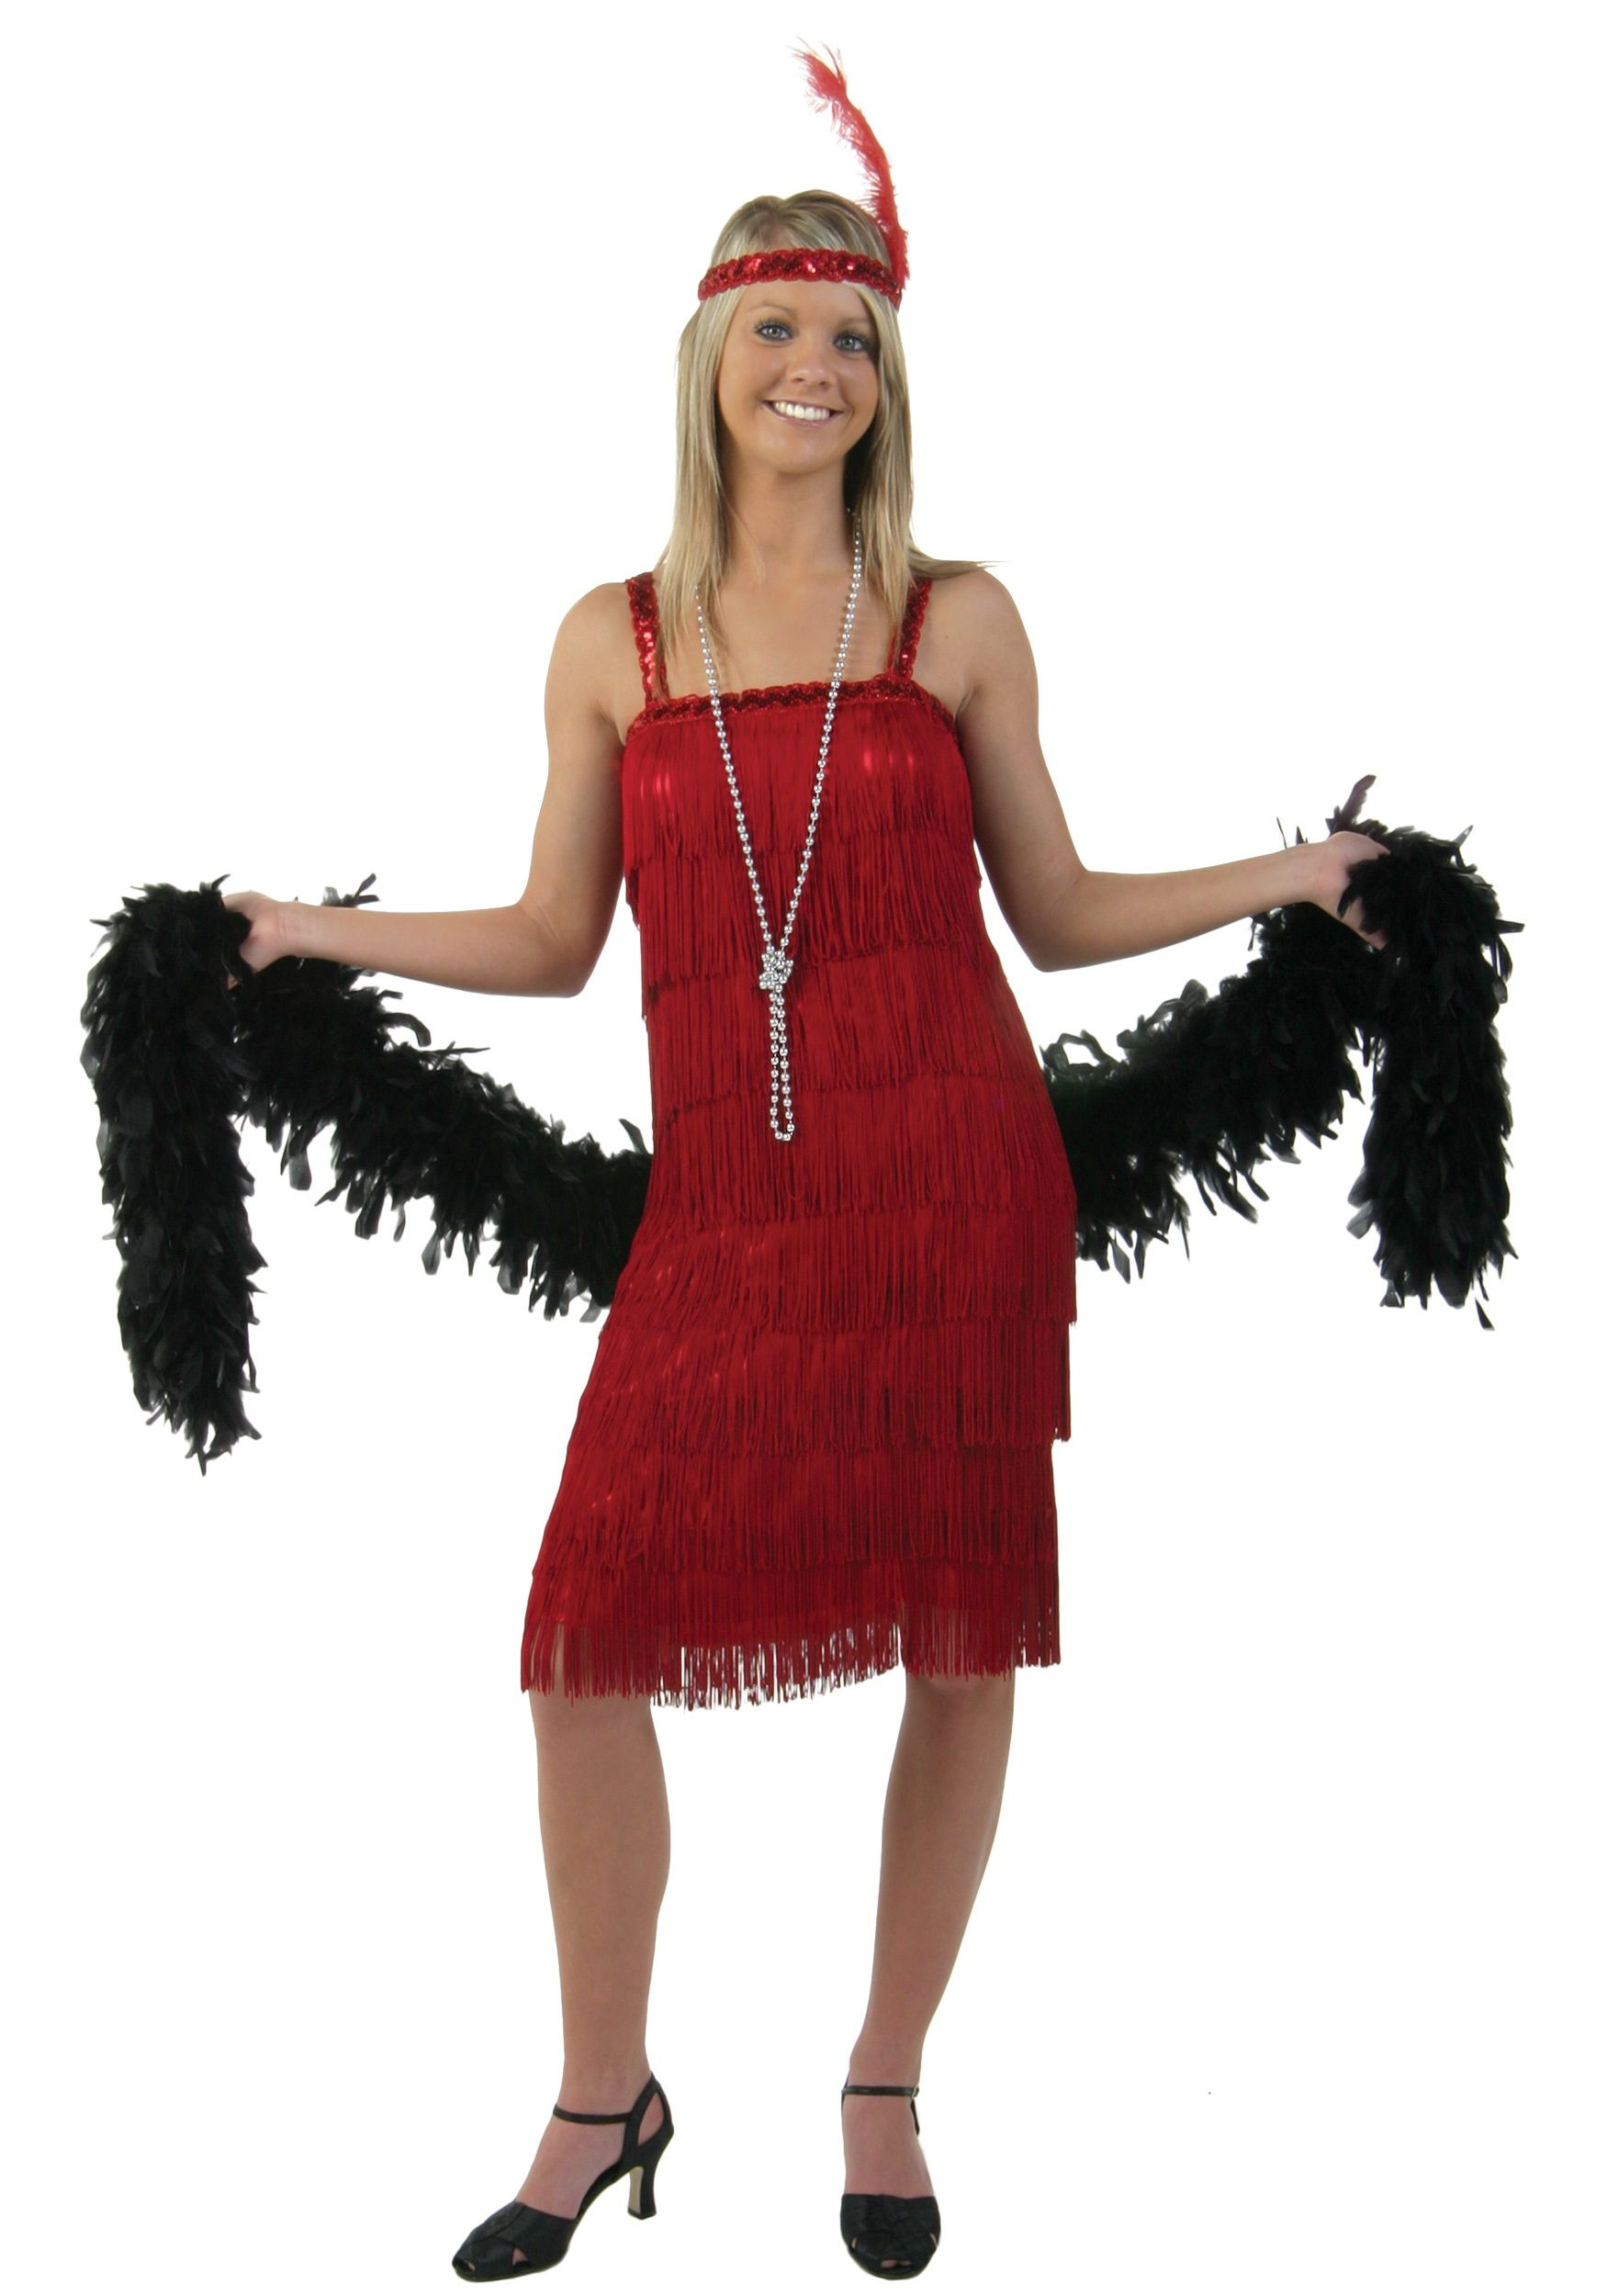 537f7047f0bbe Miss Millie Red Flapper Costume | Halloween | Red flapper dress ...